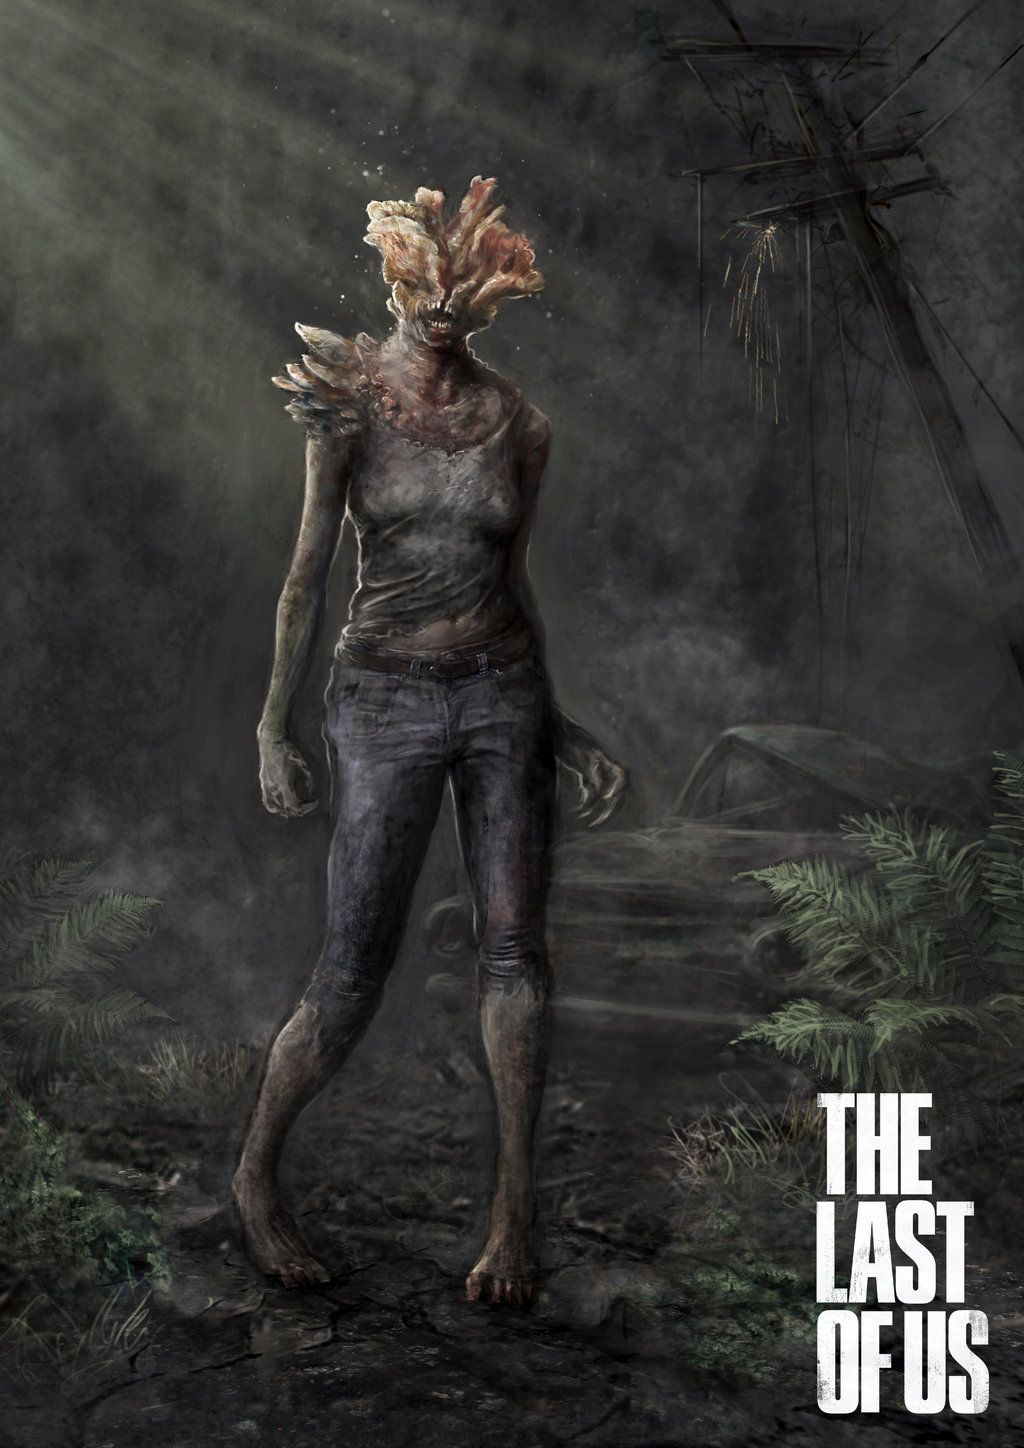 Clicker By 89as13 On Deviantart The Lest Of Us The Last Of Us The Last Of Us2